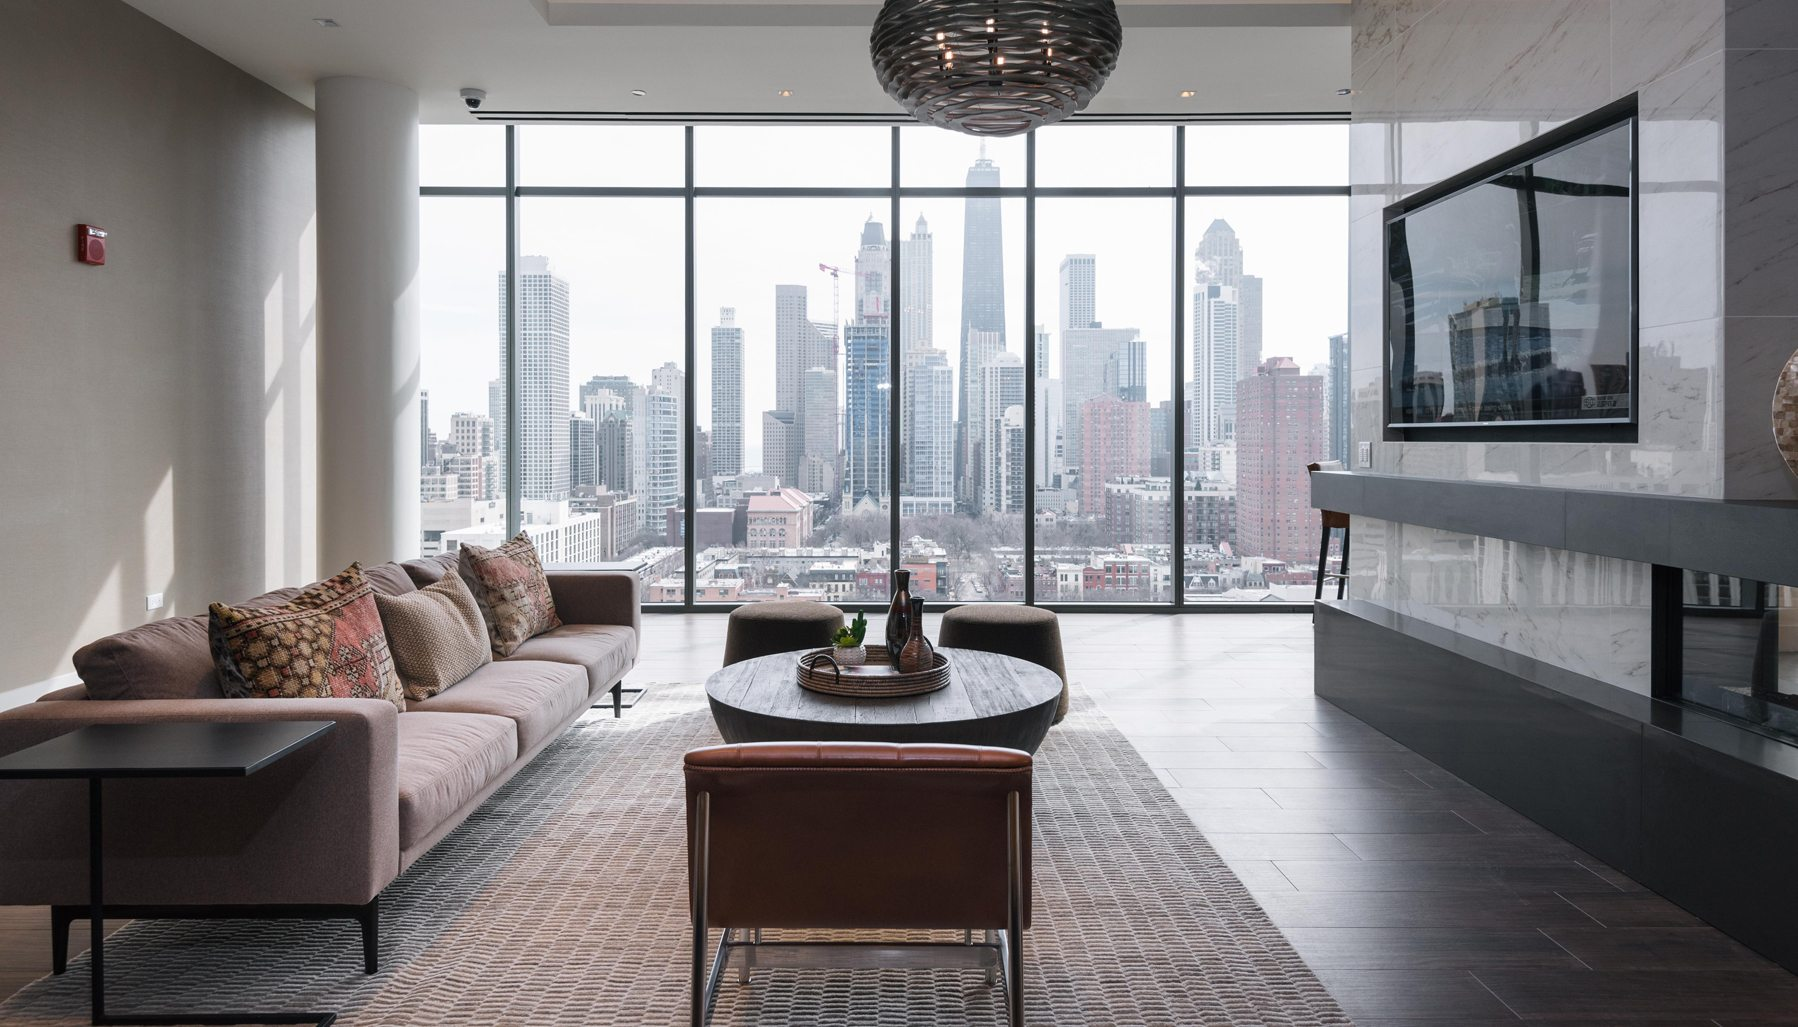 Luxury Apartments For Rent Near Broker Round Table: Niche 905's New Chicago Apartments